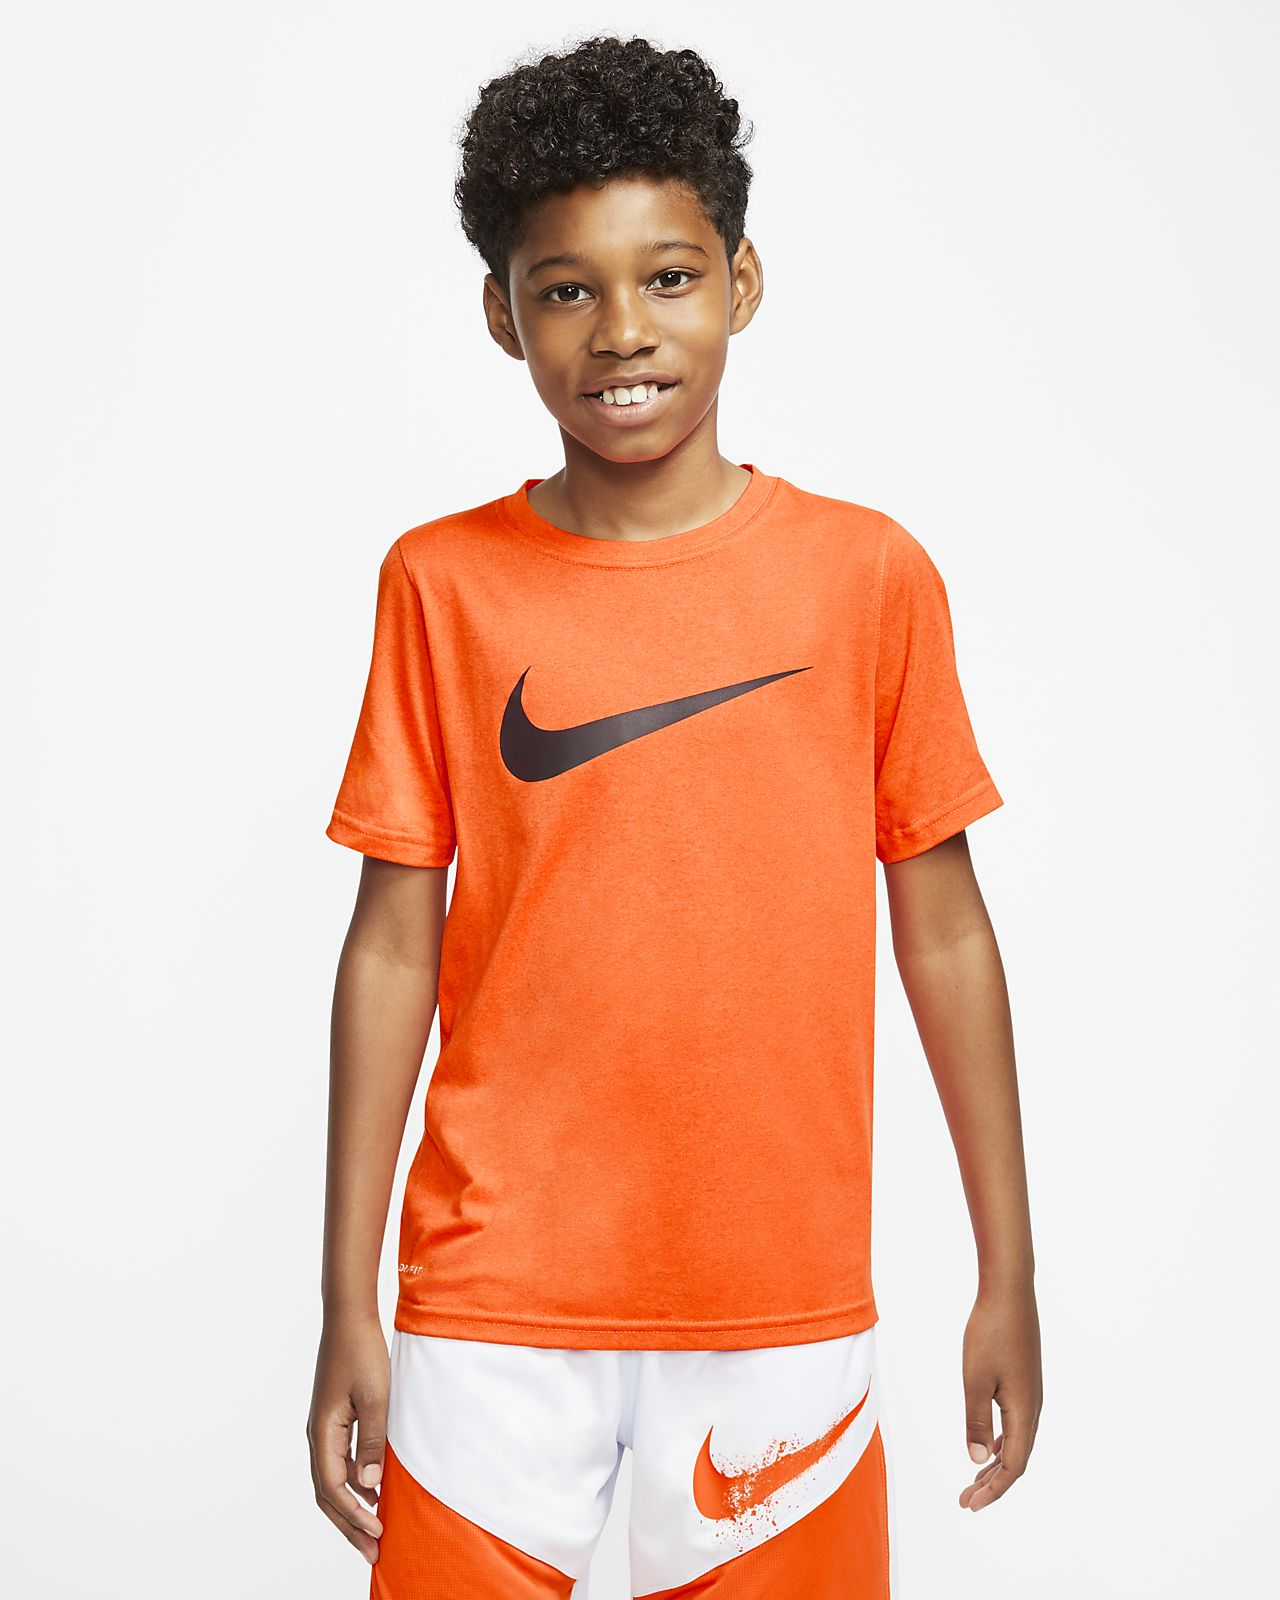 Nike Dri-FIT Big Kids' Swoosh Training T-Shirt